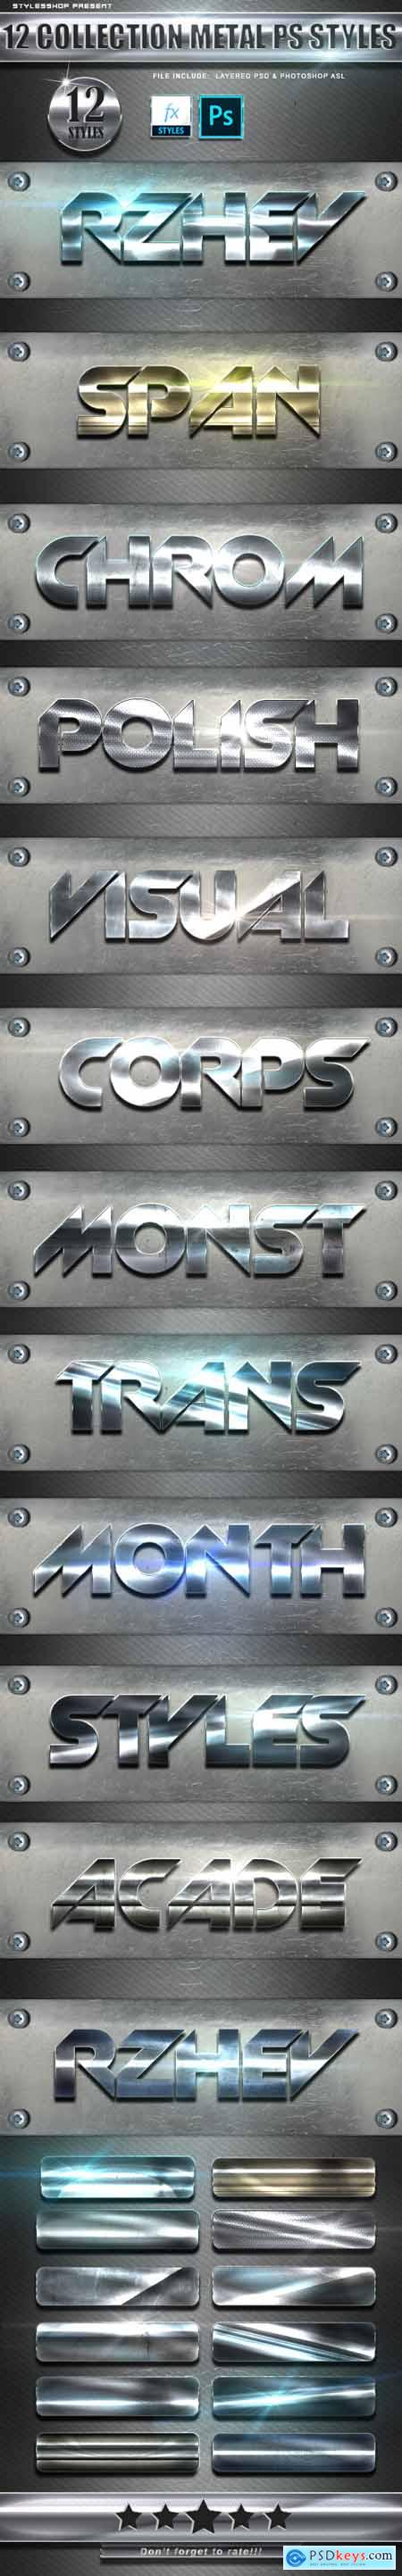 12 Collection Metal Photoshop Text Styles Vol 3 24783635